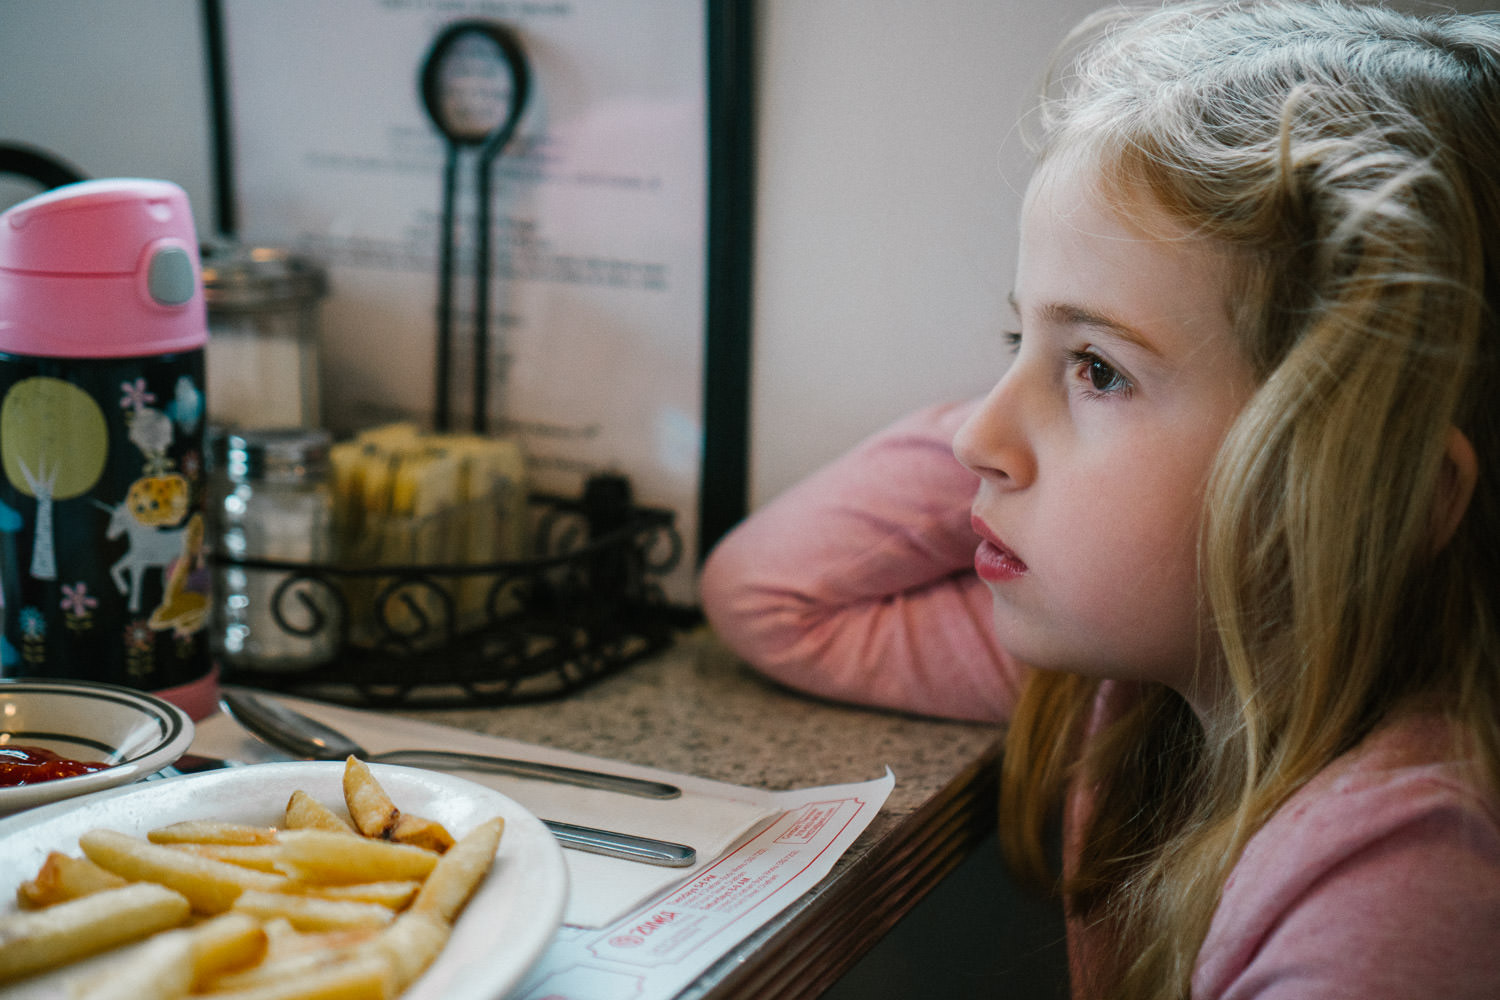 A little girl zones out at a table in a diner.